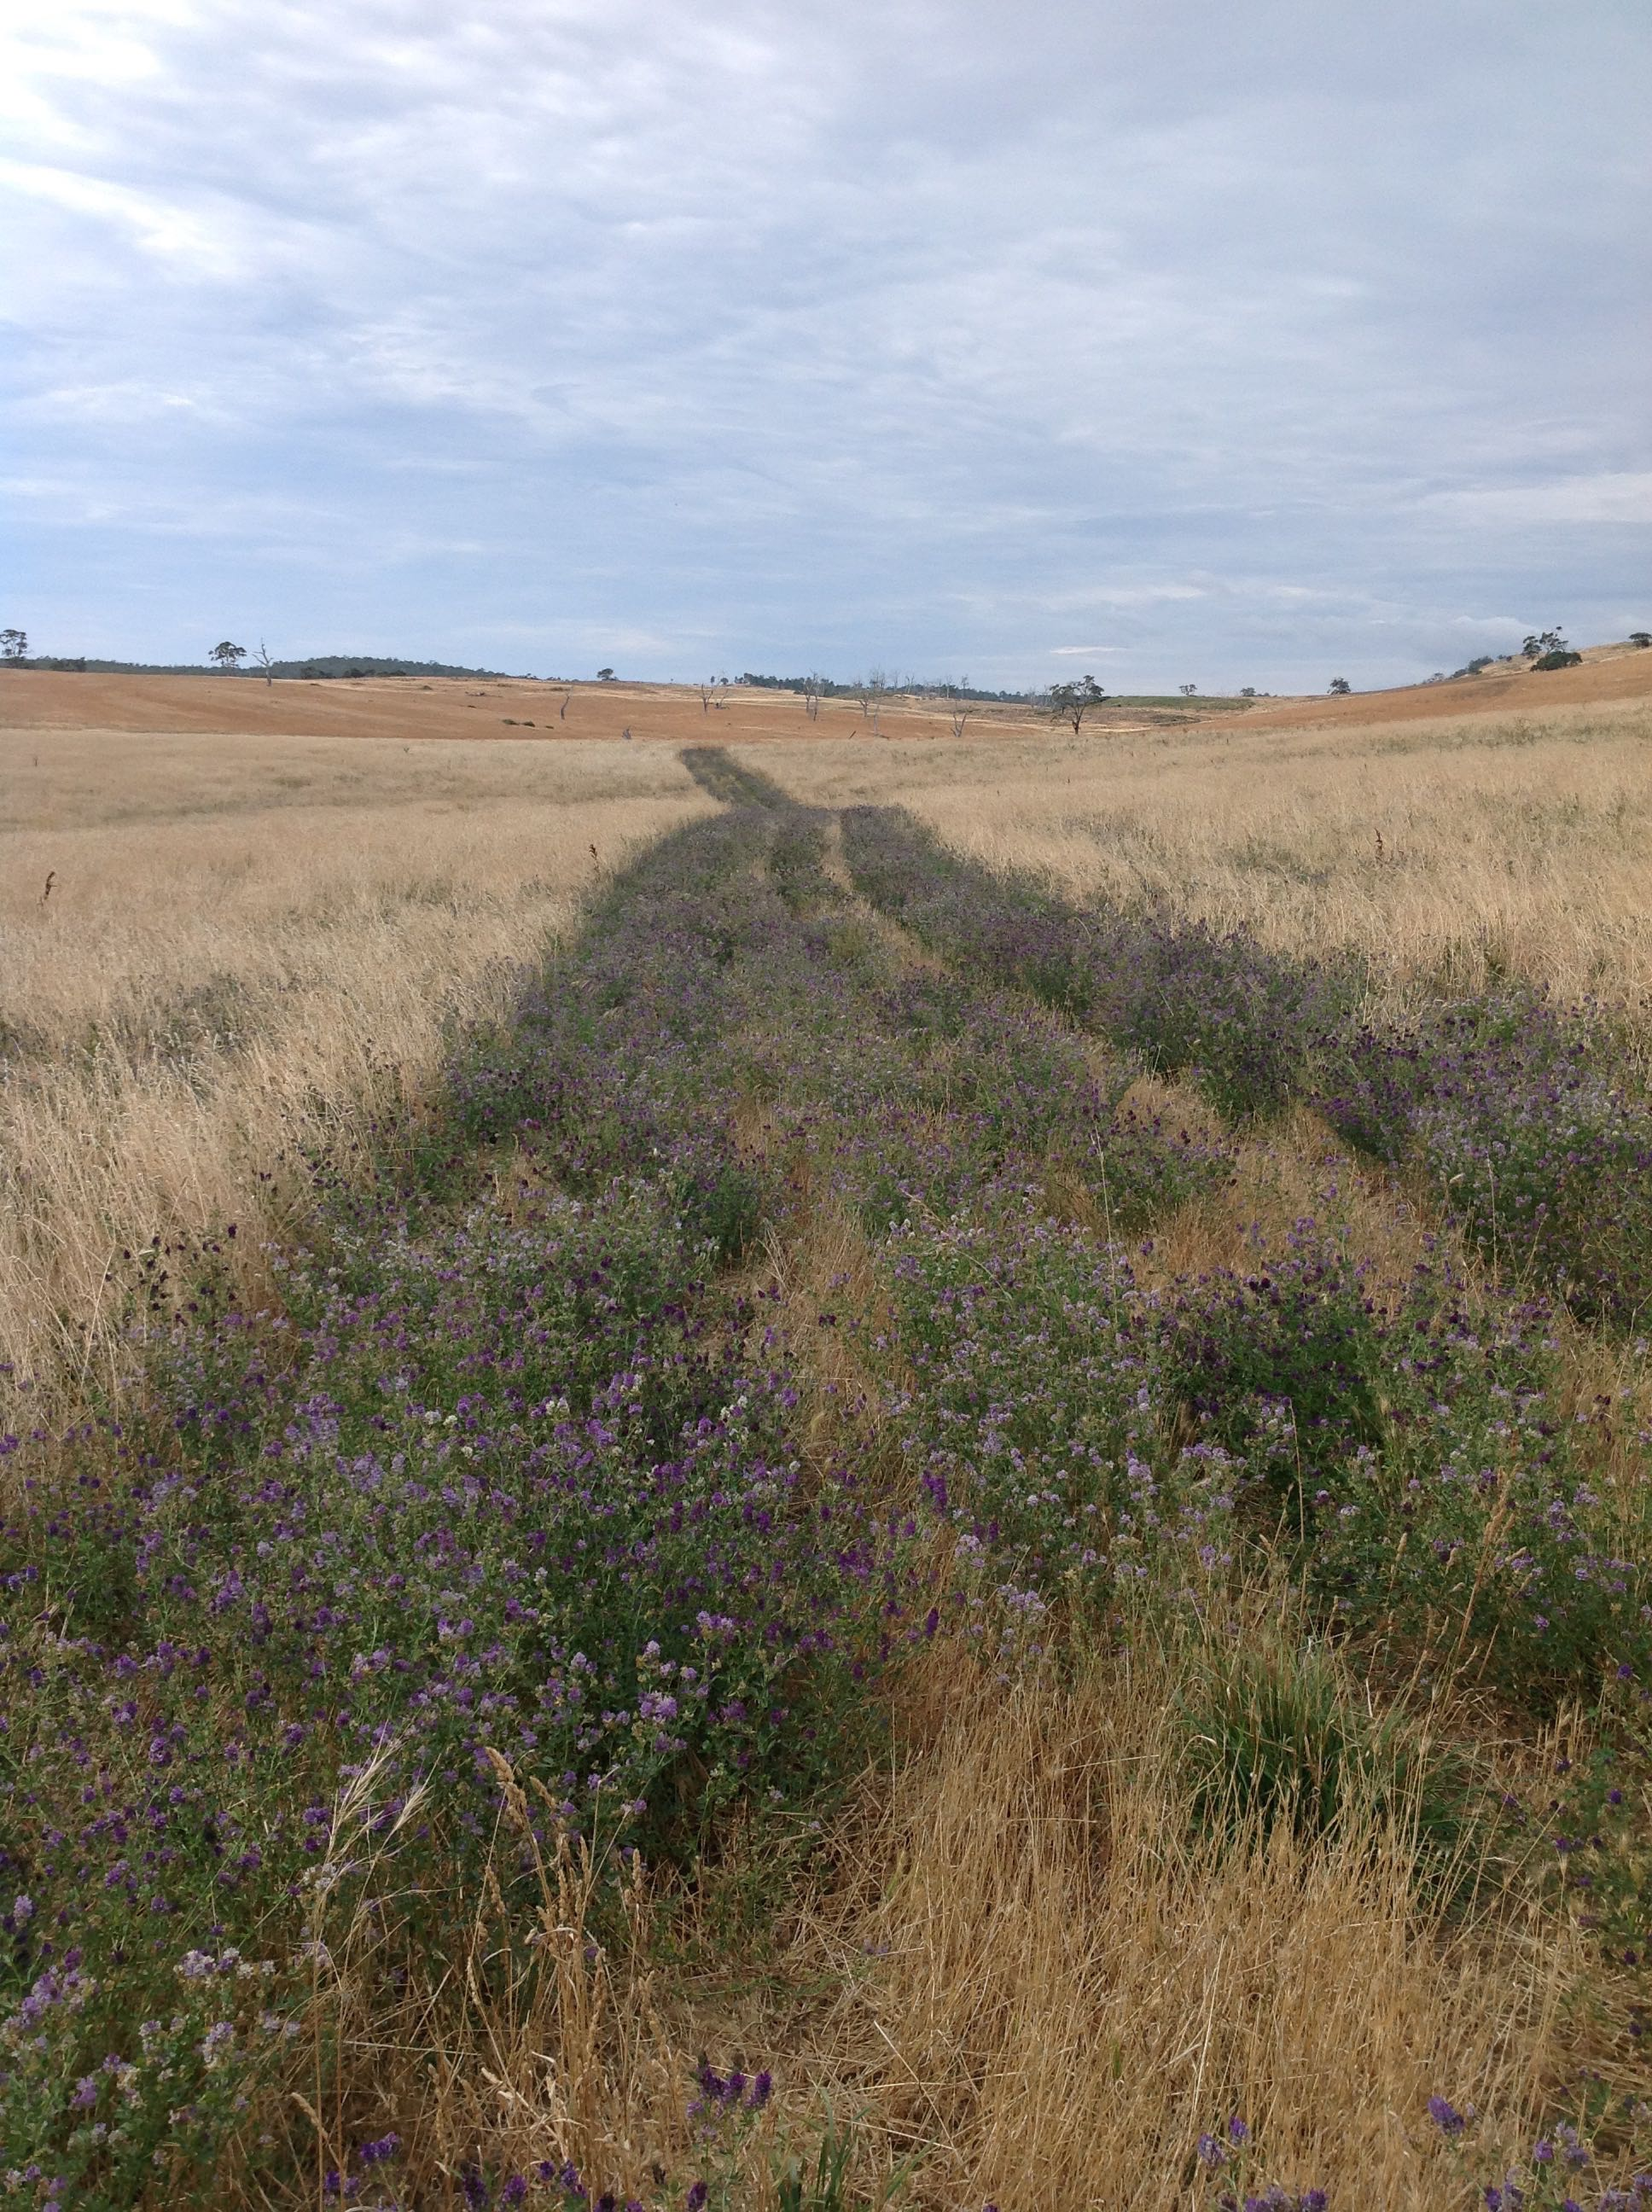 The track I mowed through the Lucerne Paddock earlier this summer.  The purple flowers are lucerne blossoms.  Dry speargrass with its sharp seed heads extends to either side.  That's Old Cabin in the background, with the reddish cocksfoot grass cover.